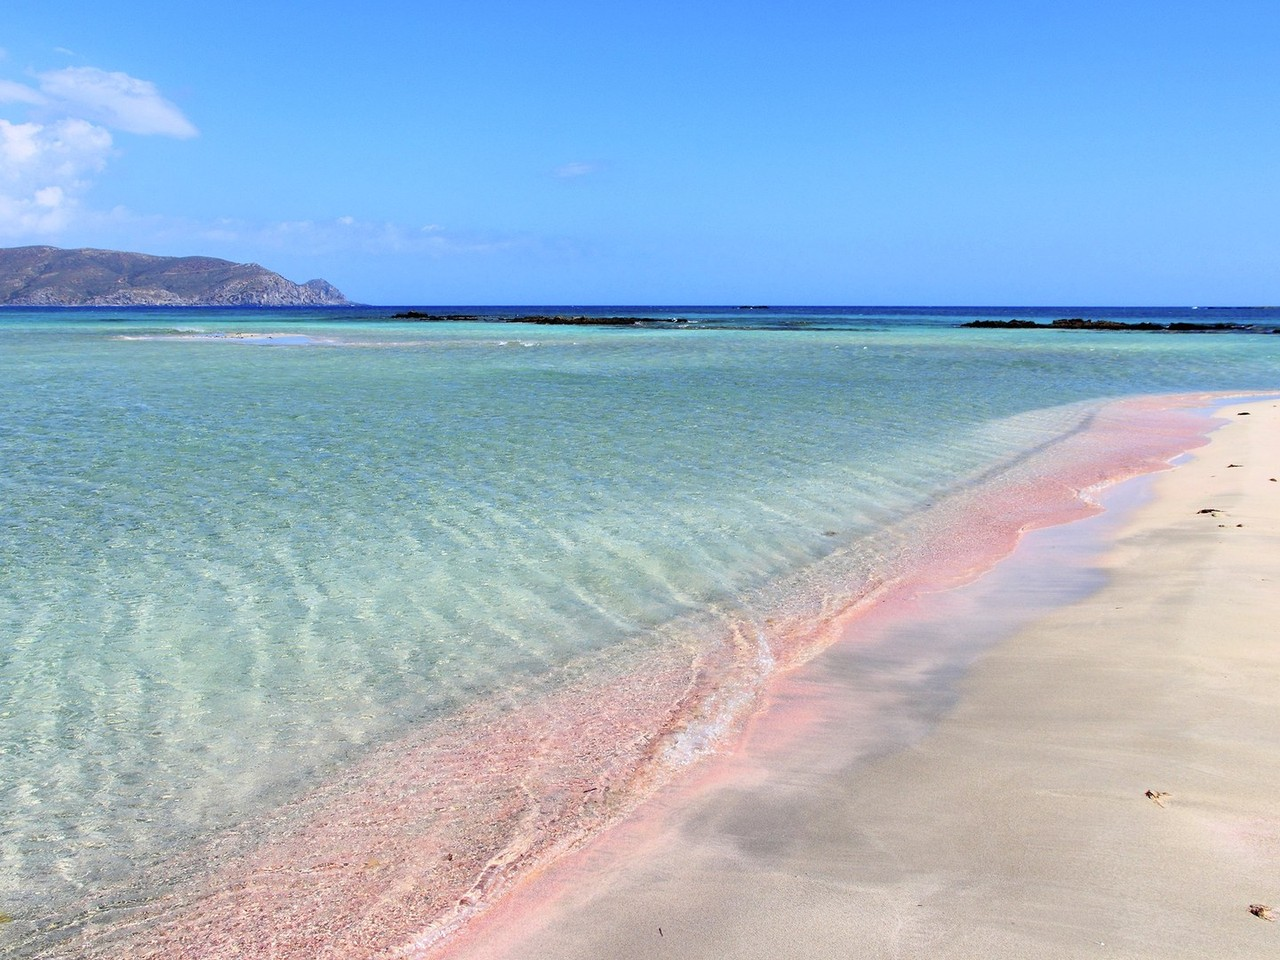 pink-beaches-Elafonisi-beach-cr-getty-452527949.jp